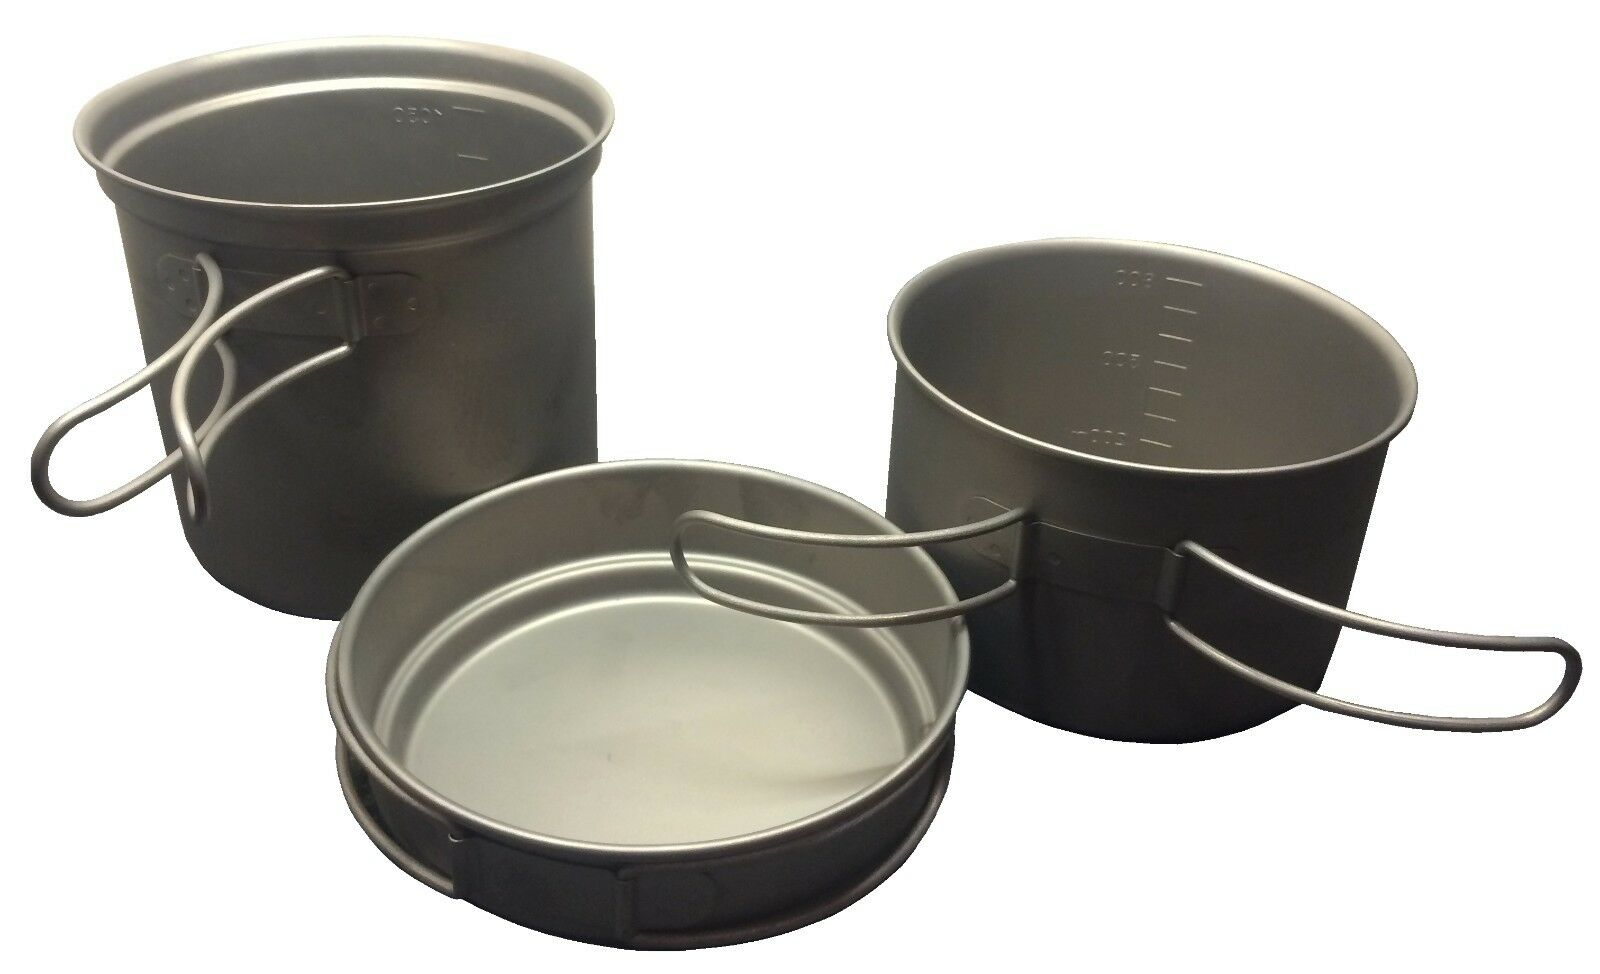 3 pc TITANIUM PANS POTS  with SS HANDLES very large camping hiking